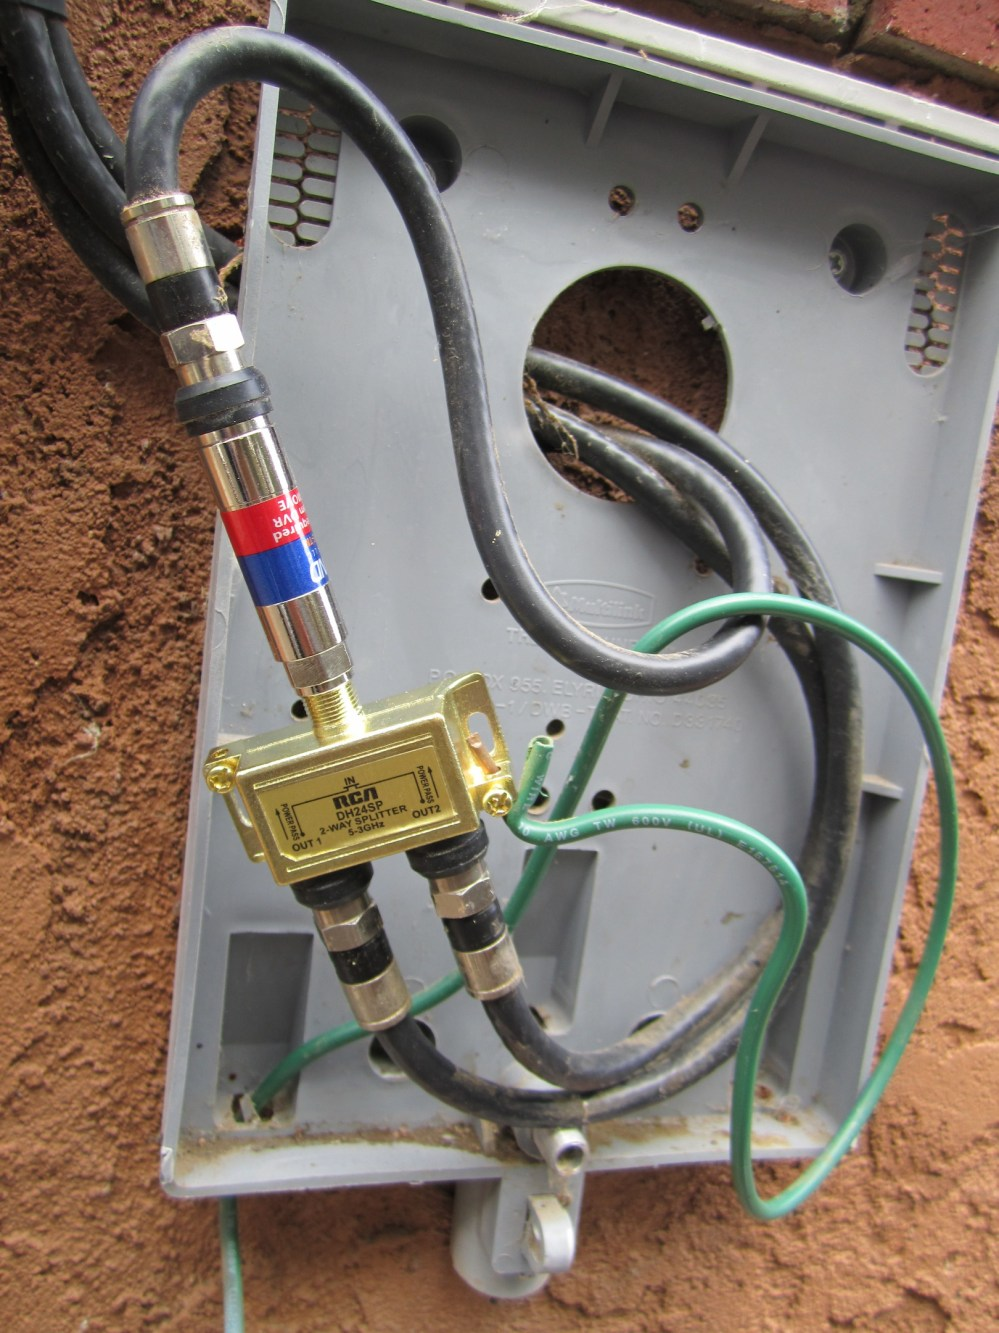 medium resolution of original cable utility box modified cable utility box